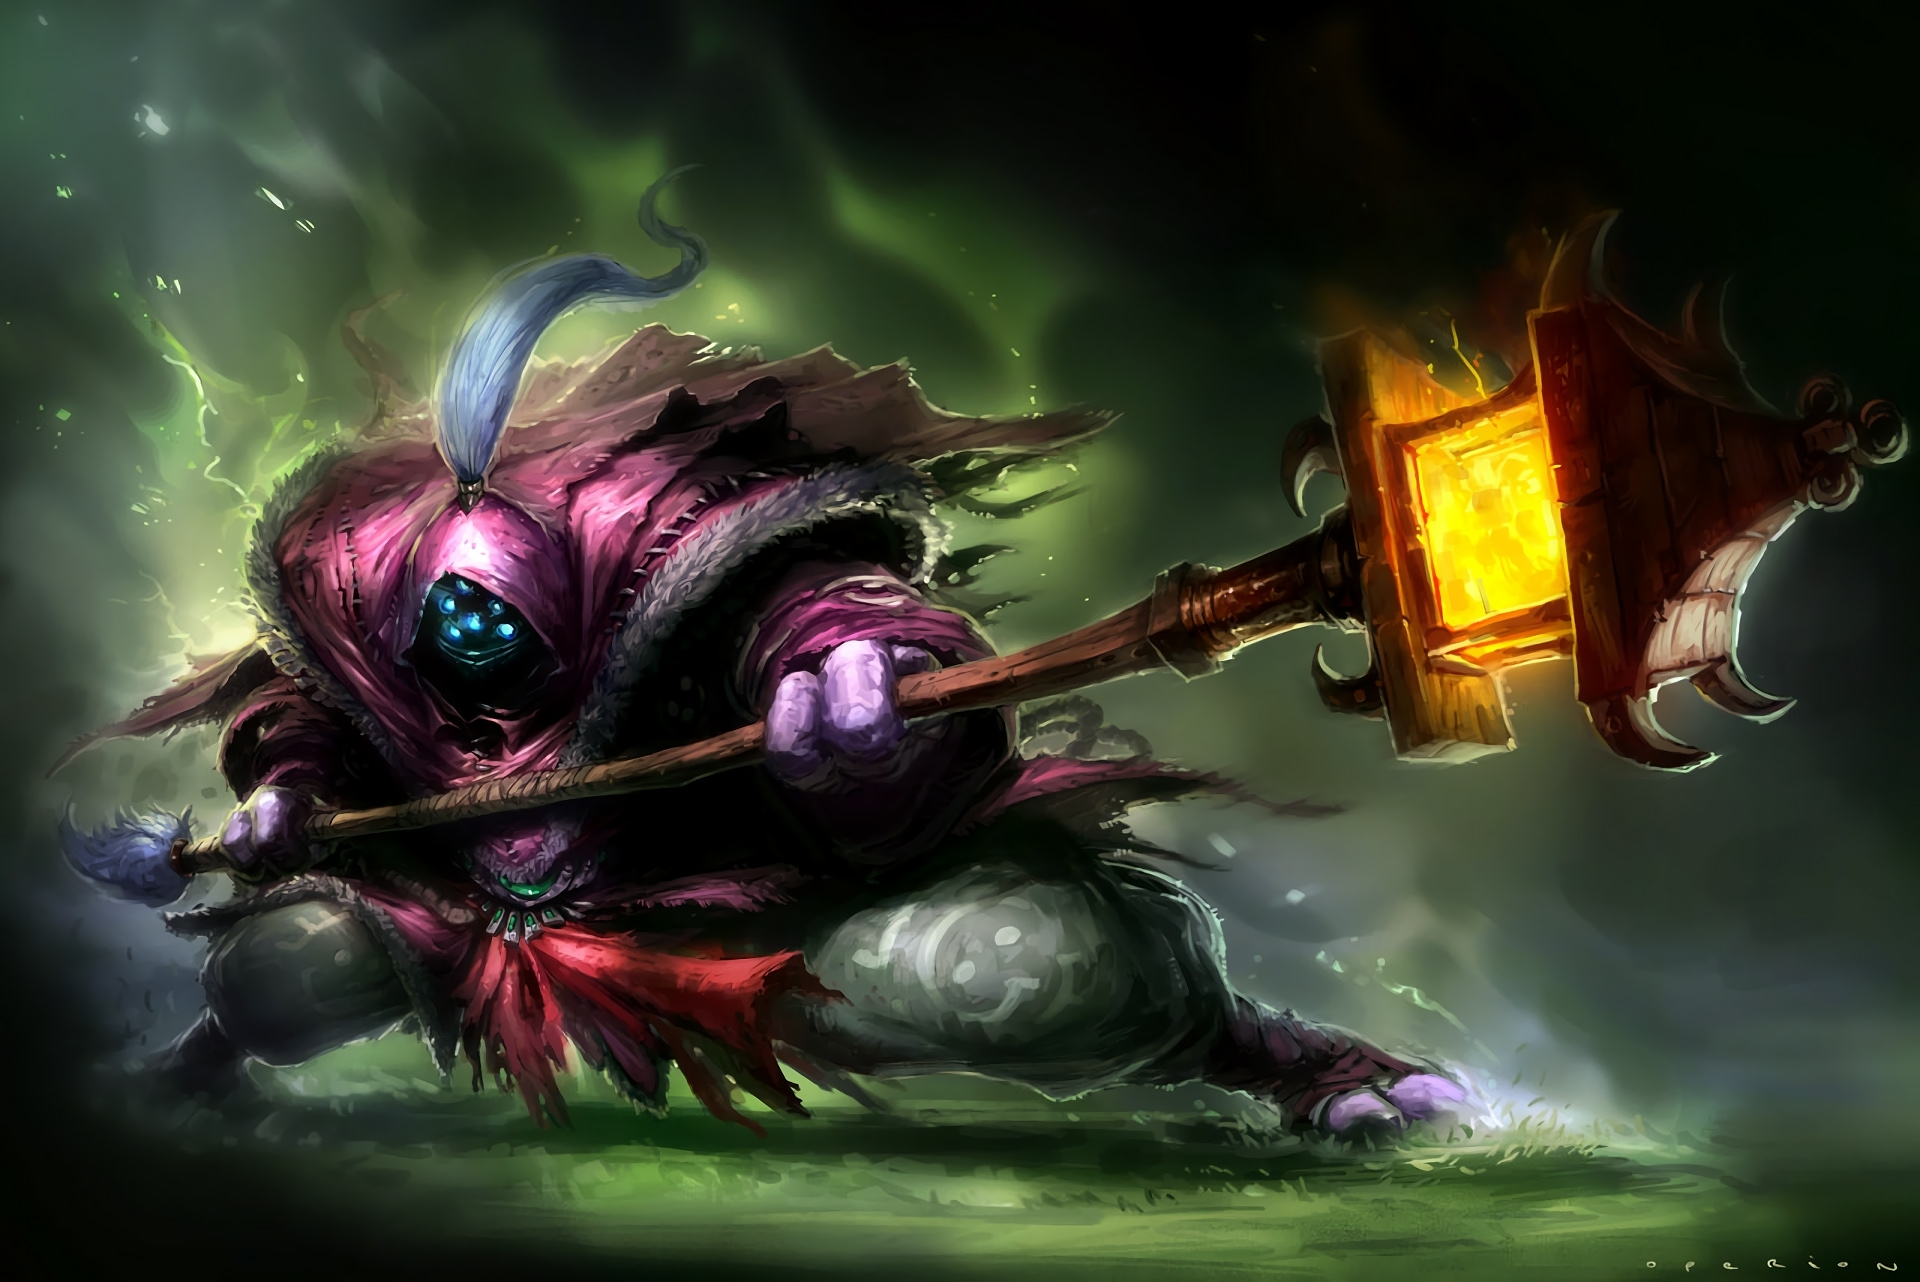 jax - lol wallpapers   hd wallpapers & artworks for league of legends